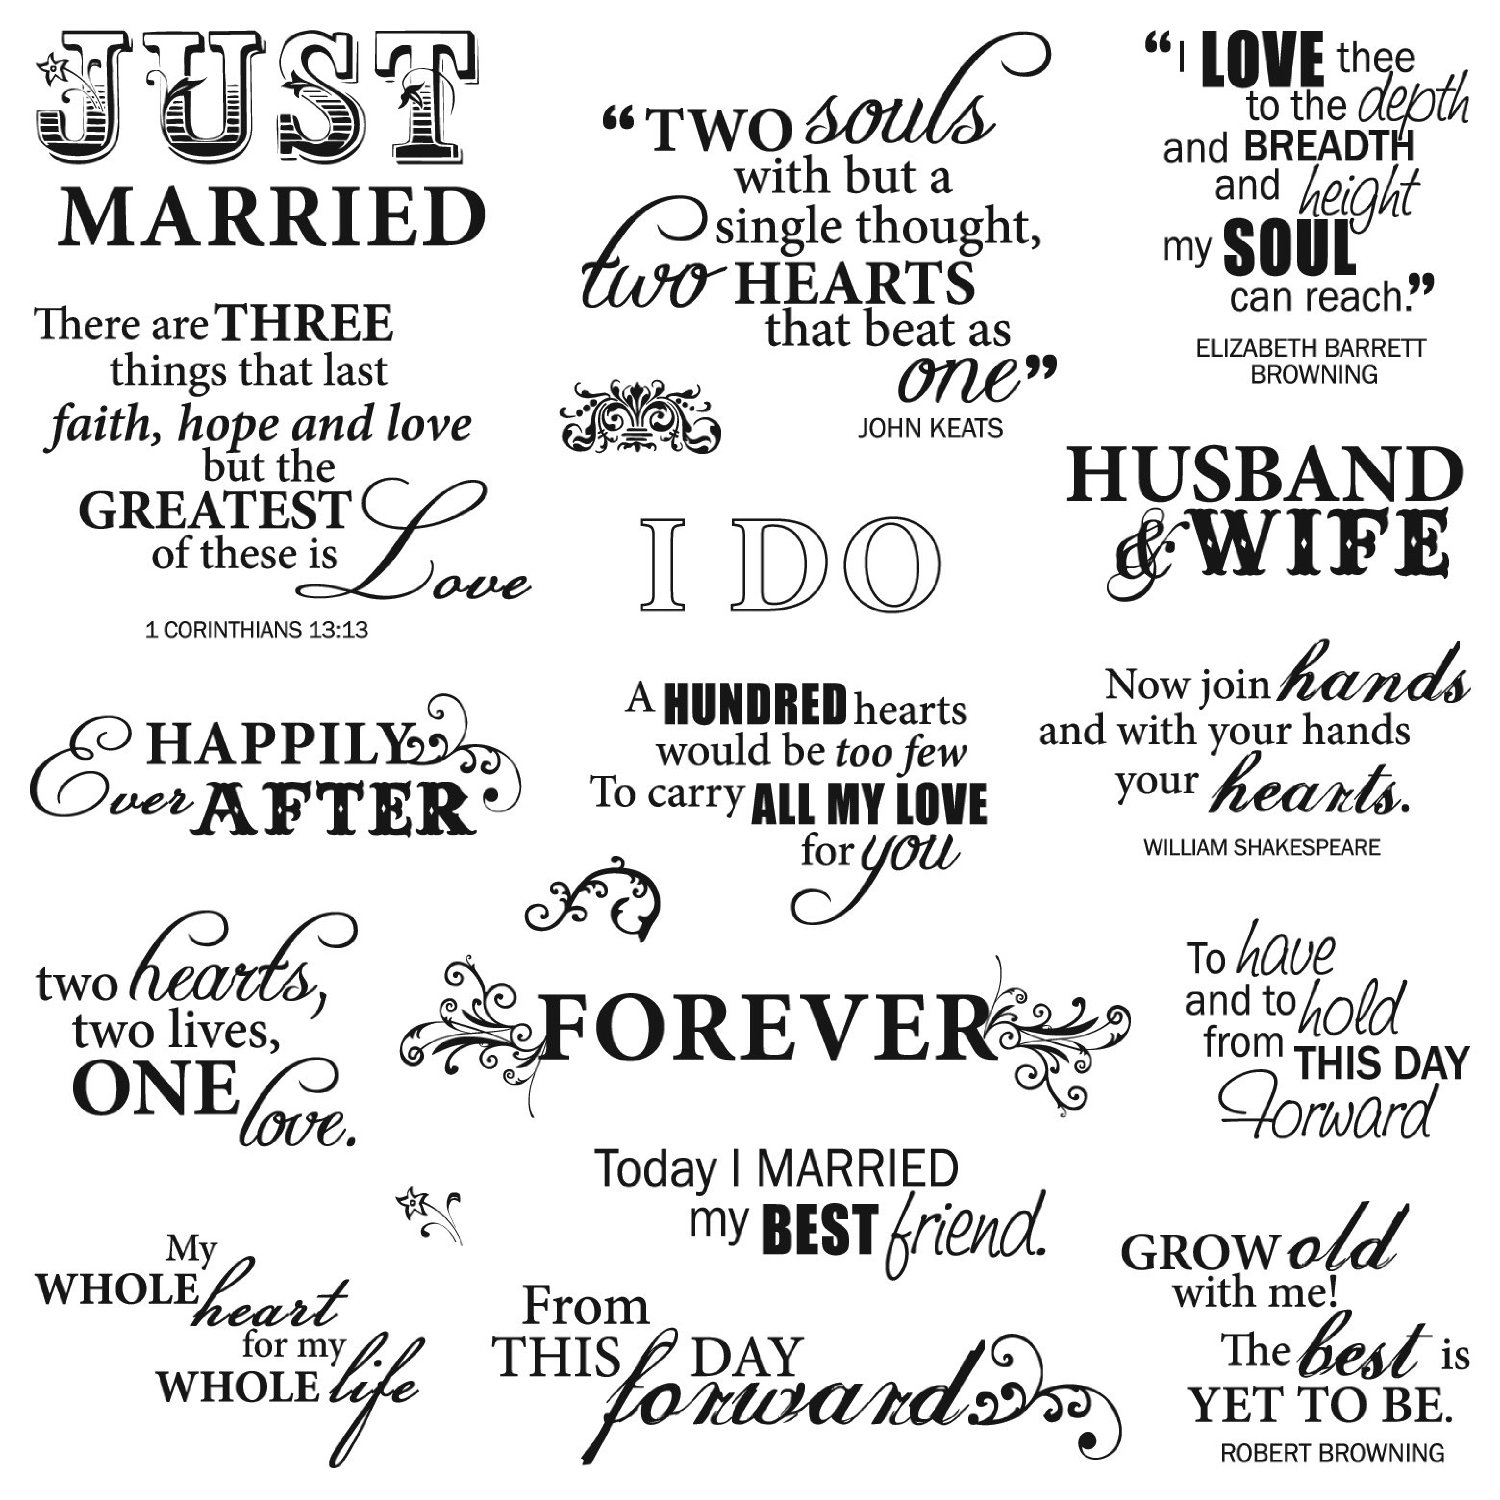 Groom Quotes. QuotesGram